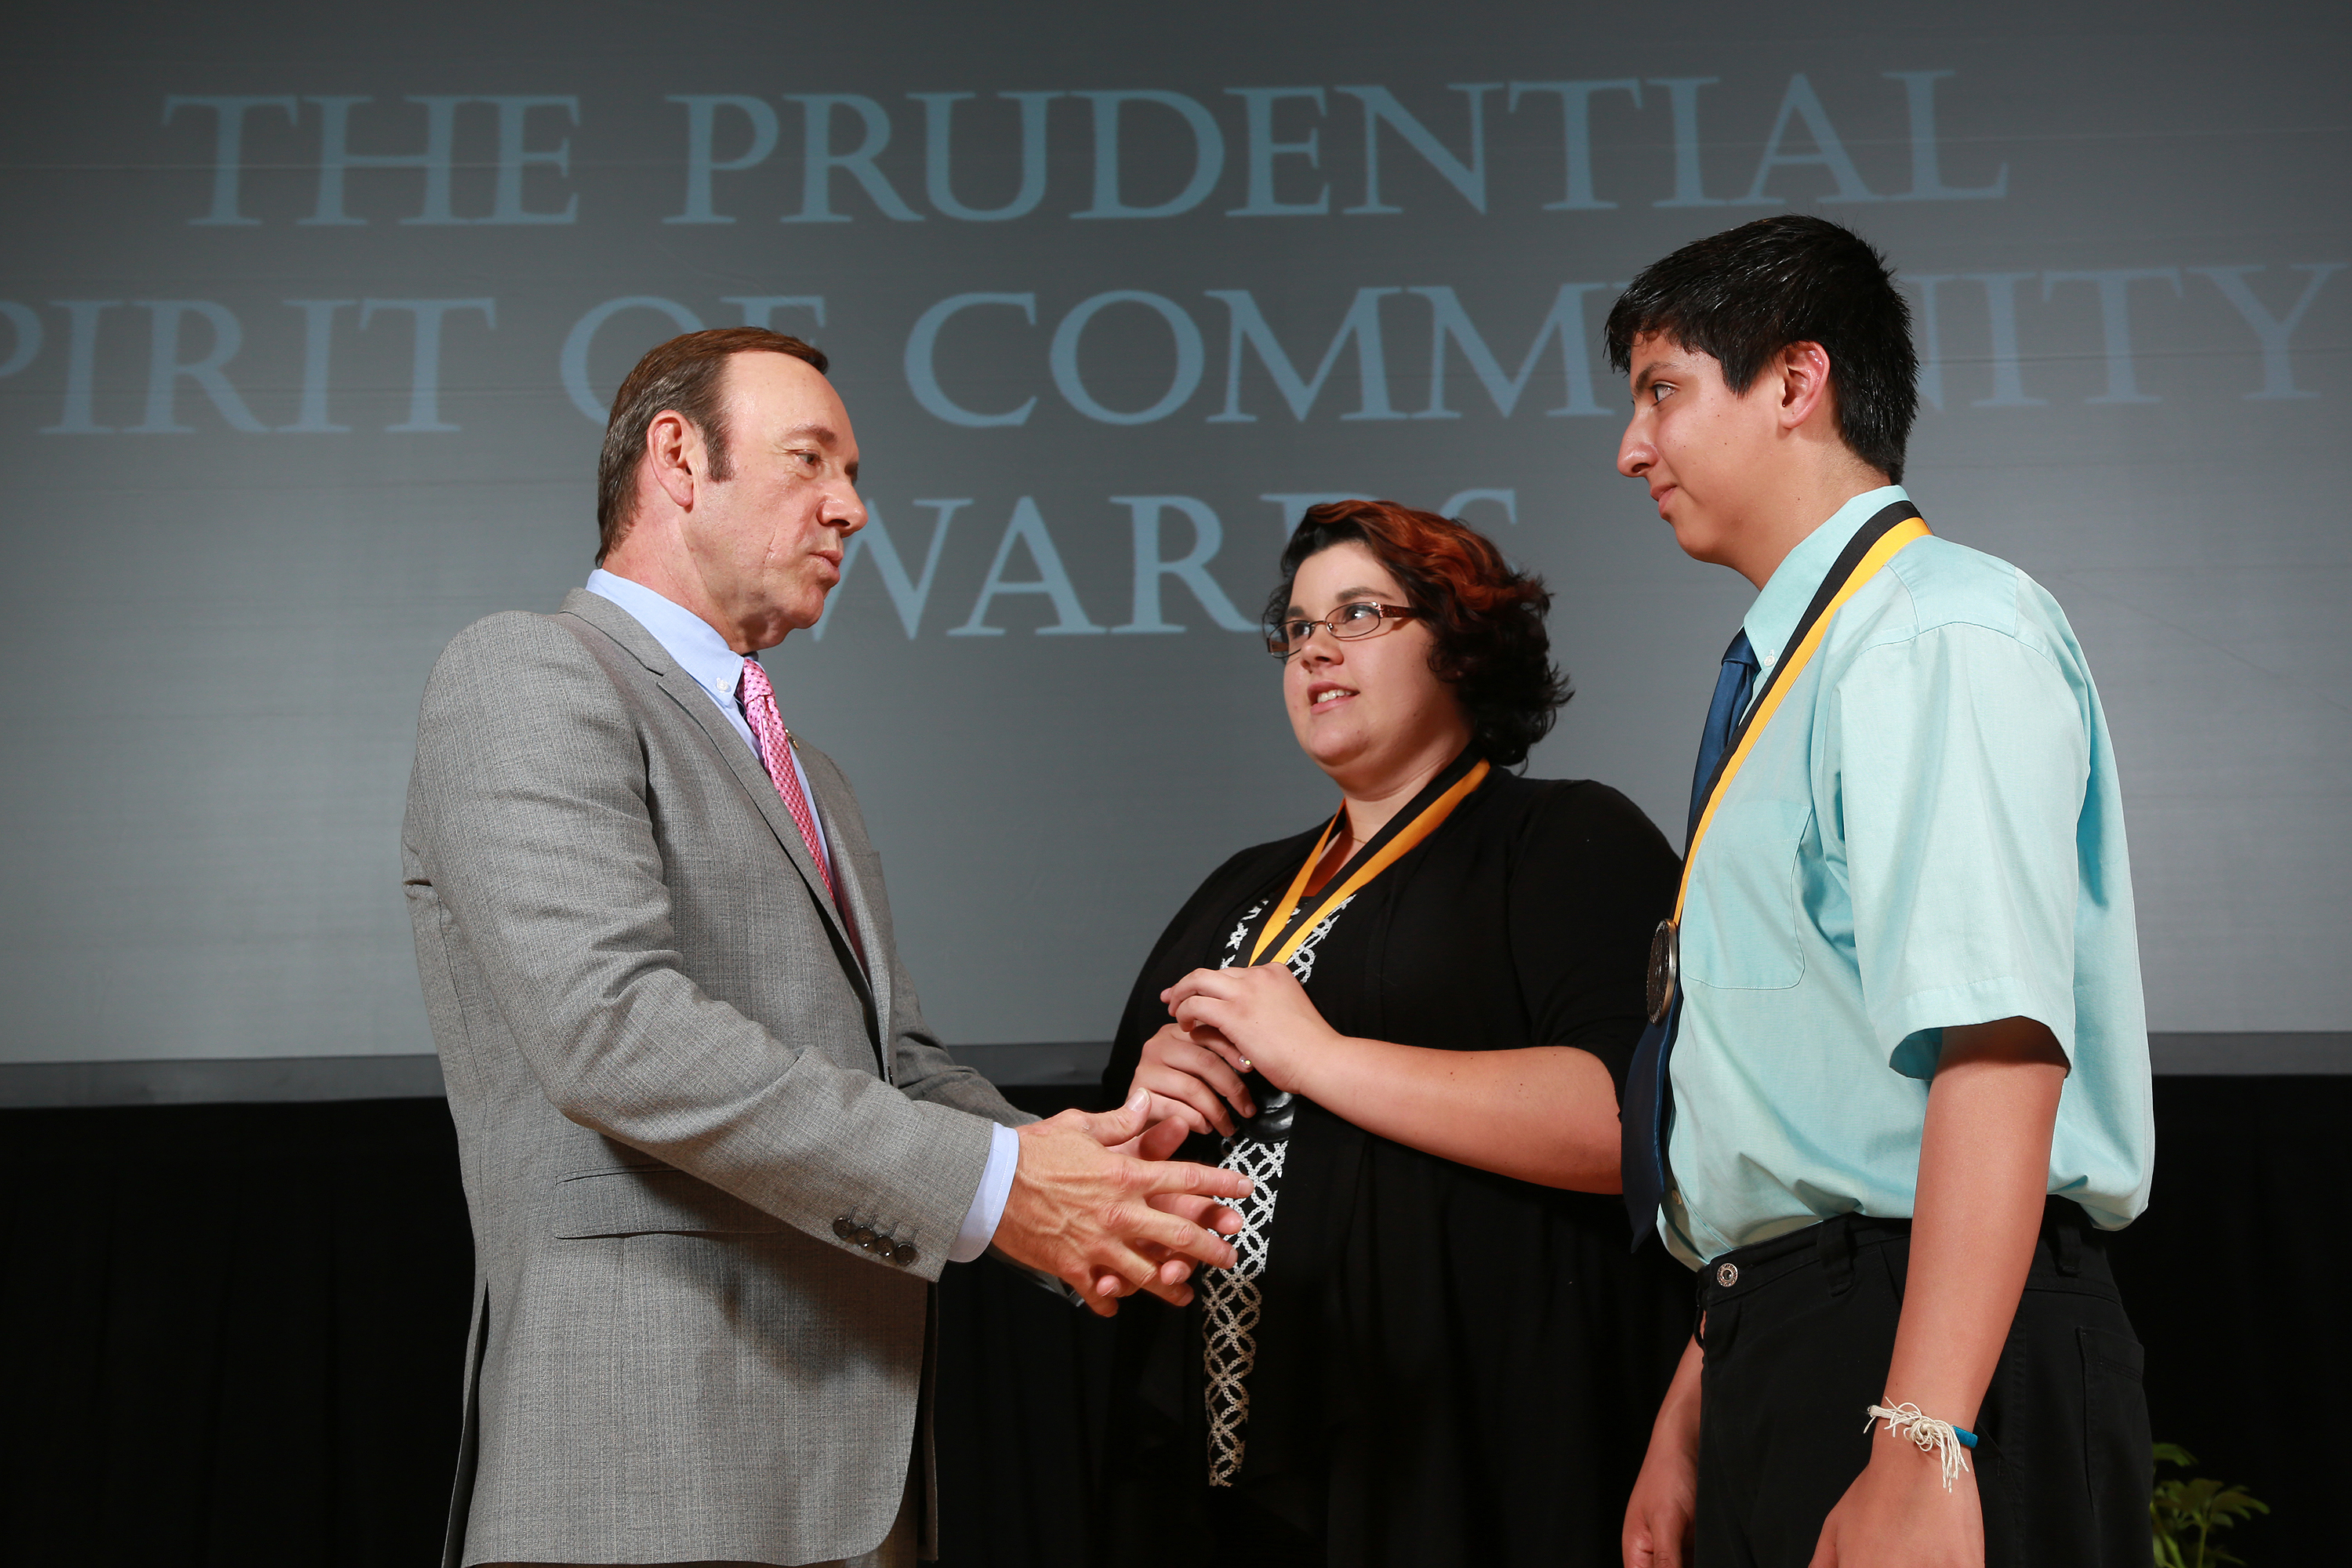 Academy Award-winning actor Kevin Spacey congratulates Brianna Swinderman, 16, of Rio Rancho (center) and Joseph Lee Estrada, 14, of Velarde (right) on being named New Mexico's top two youth volunteers for 2013 by The Prudential Spirit of Community Awards. Brianna and Joseph were honored at a ceremony on Sunday, May 5 at the Smithsonian's National Museum of Natural History, where they each received a $1,000 award. (Photo: Business Wire)